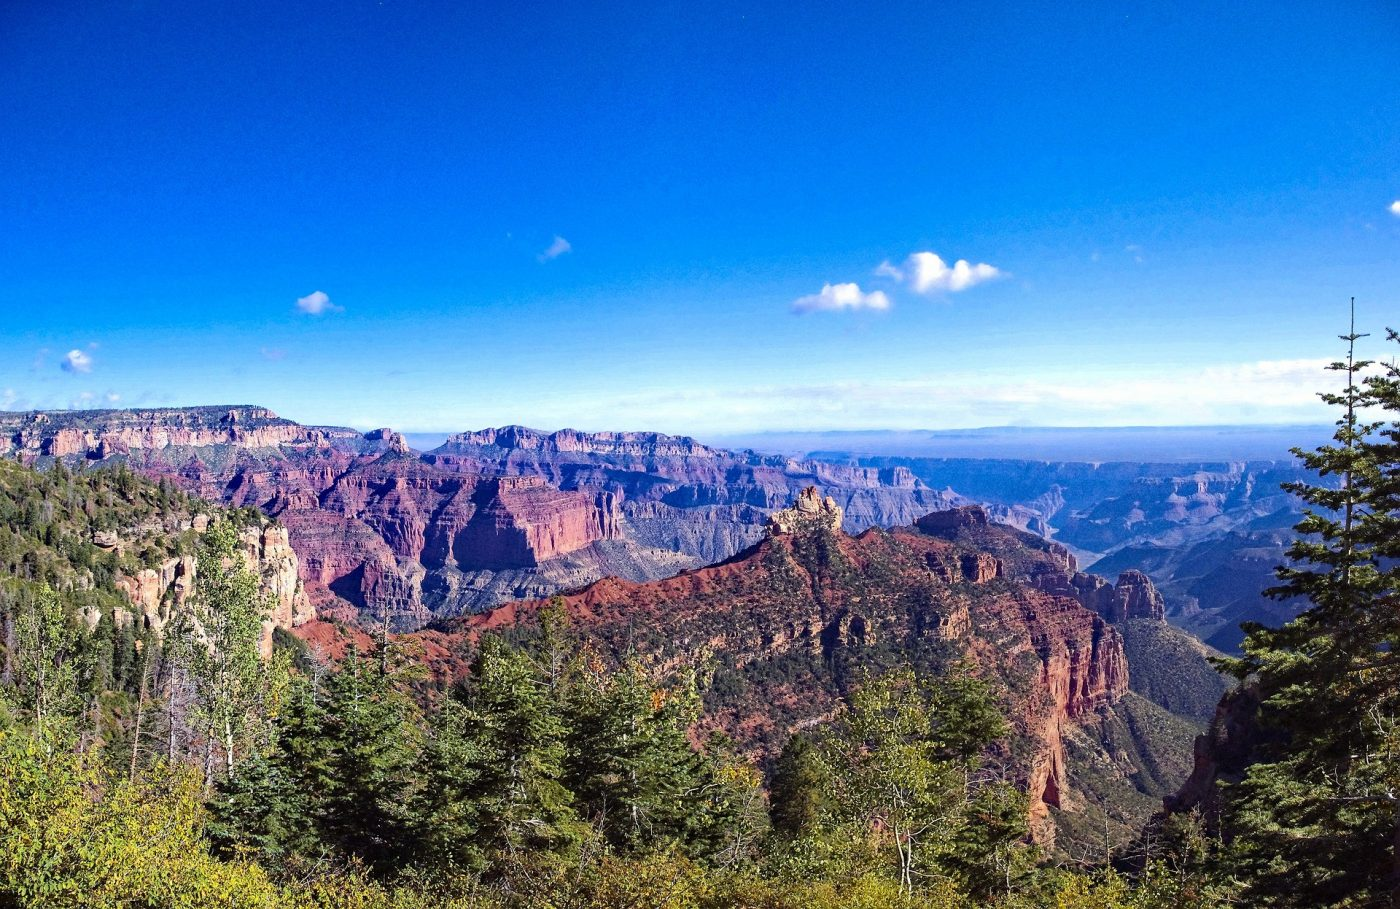 Grand Canyon - North Rim Canyon